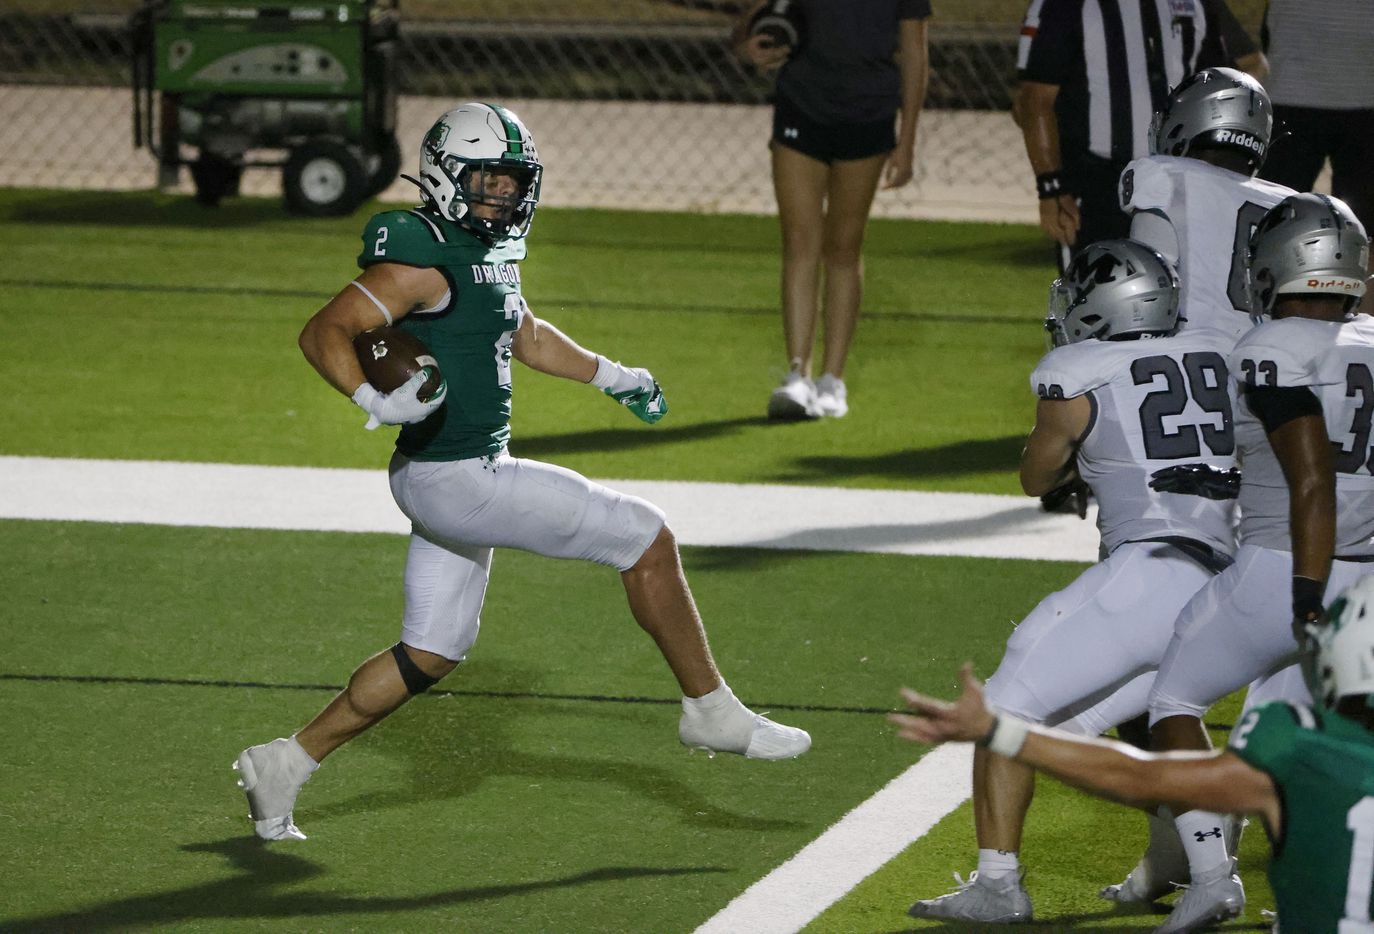 Southlake Carroll running back Owen Allen  (2) backs into the end zone for his second rushing touchdown against Arlington Martin during a high school football game in Southlake, Texas on Friday, Sept. 17, 2021. (Michael Ainsworth/Special Contributor)